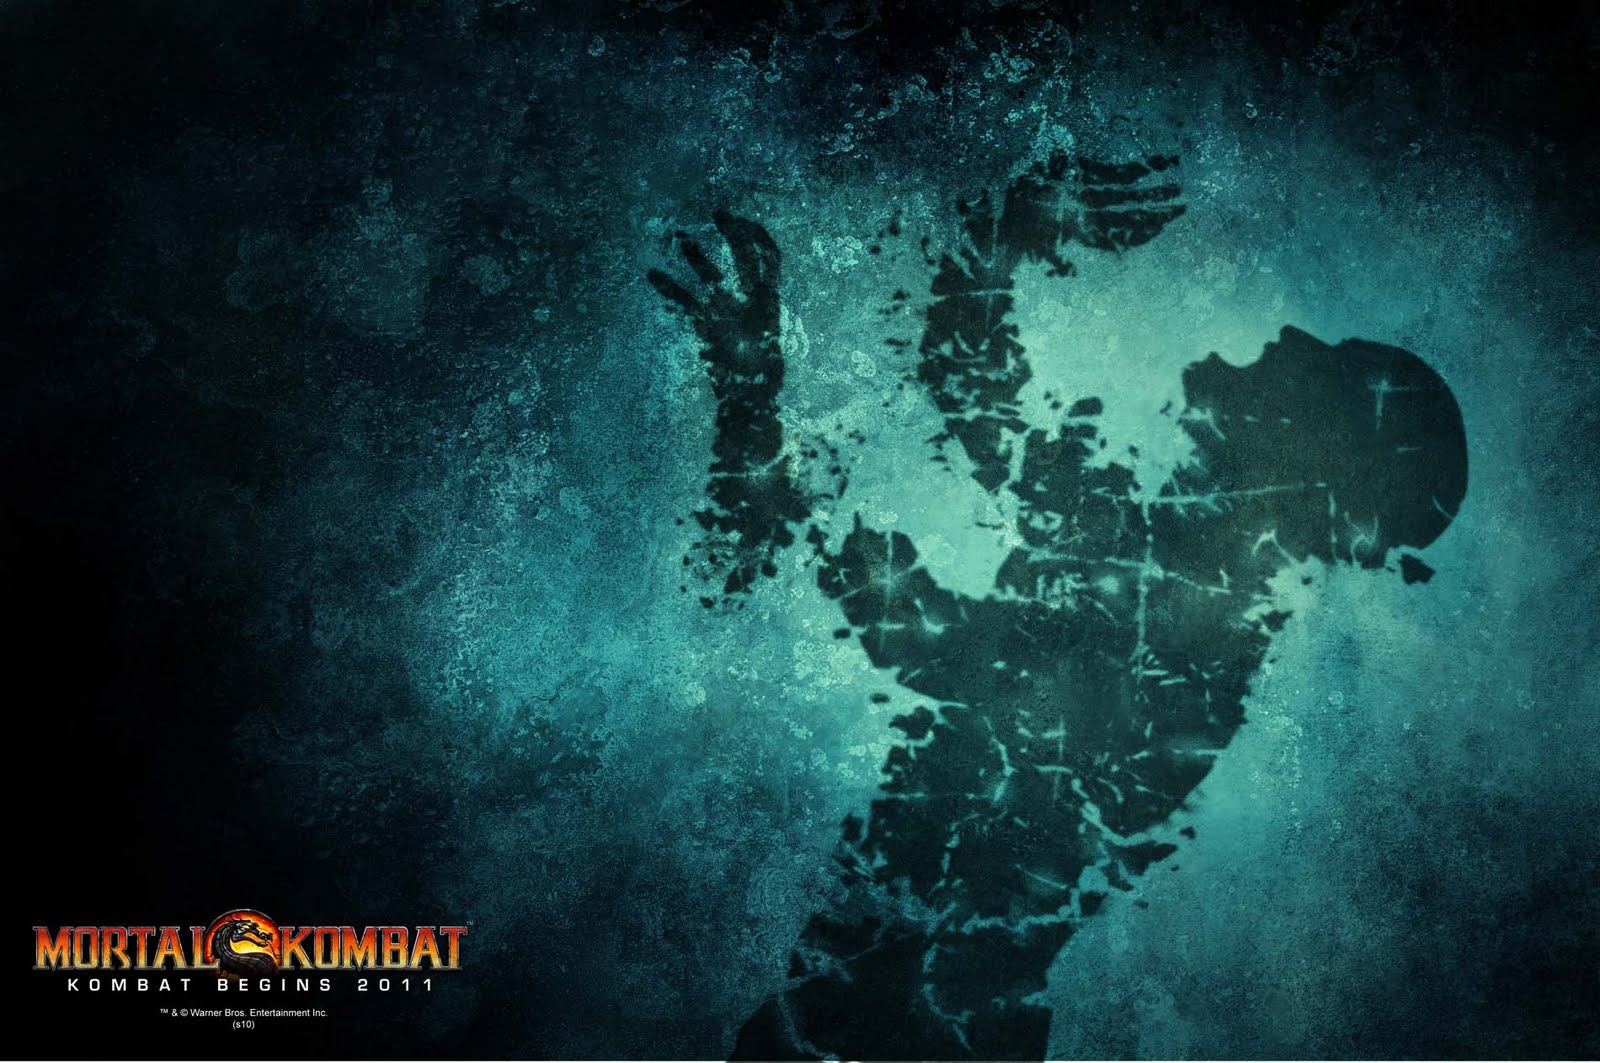 MK9 Wallpaper HD http://peetee.mine.nu/mk9-wallpapers/